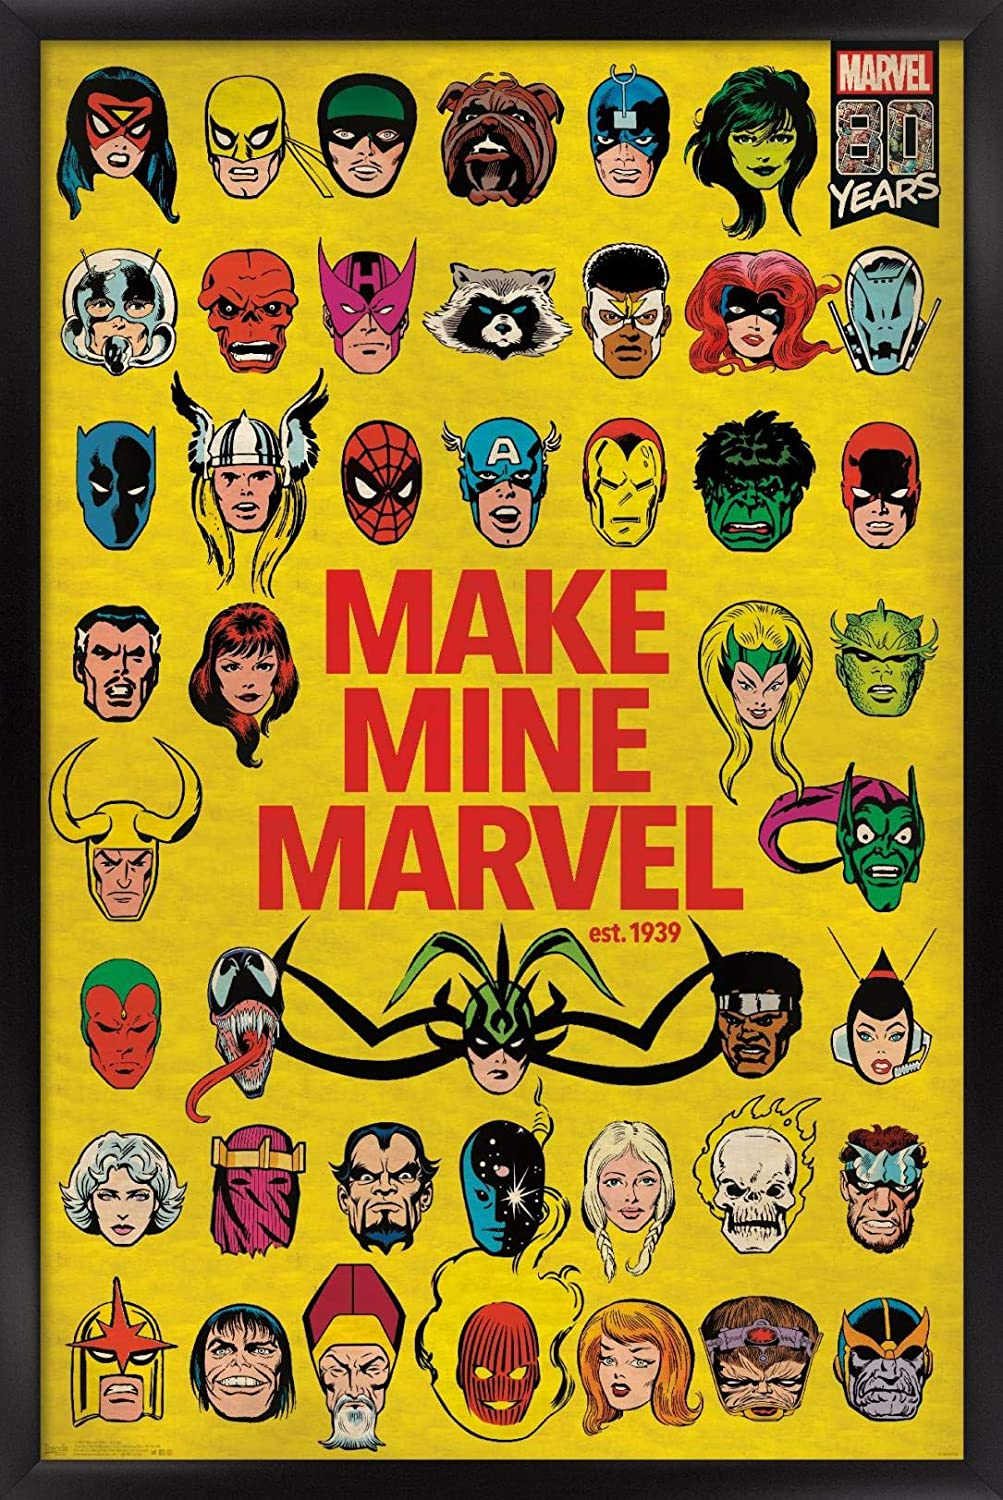 Trends International Comics-Marvel 80th Wall P All items free shipping Anniversary-Group Oakland Mall